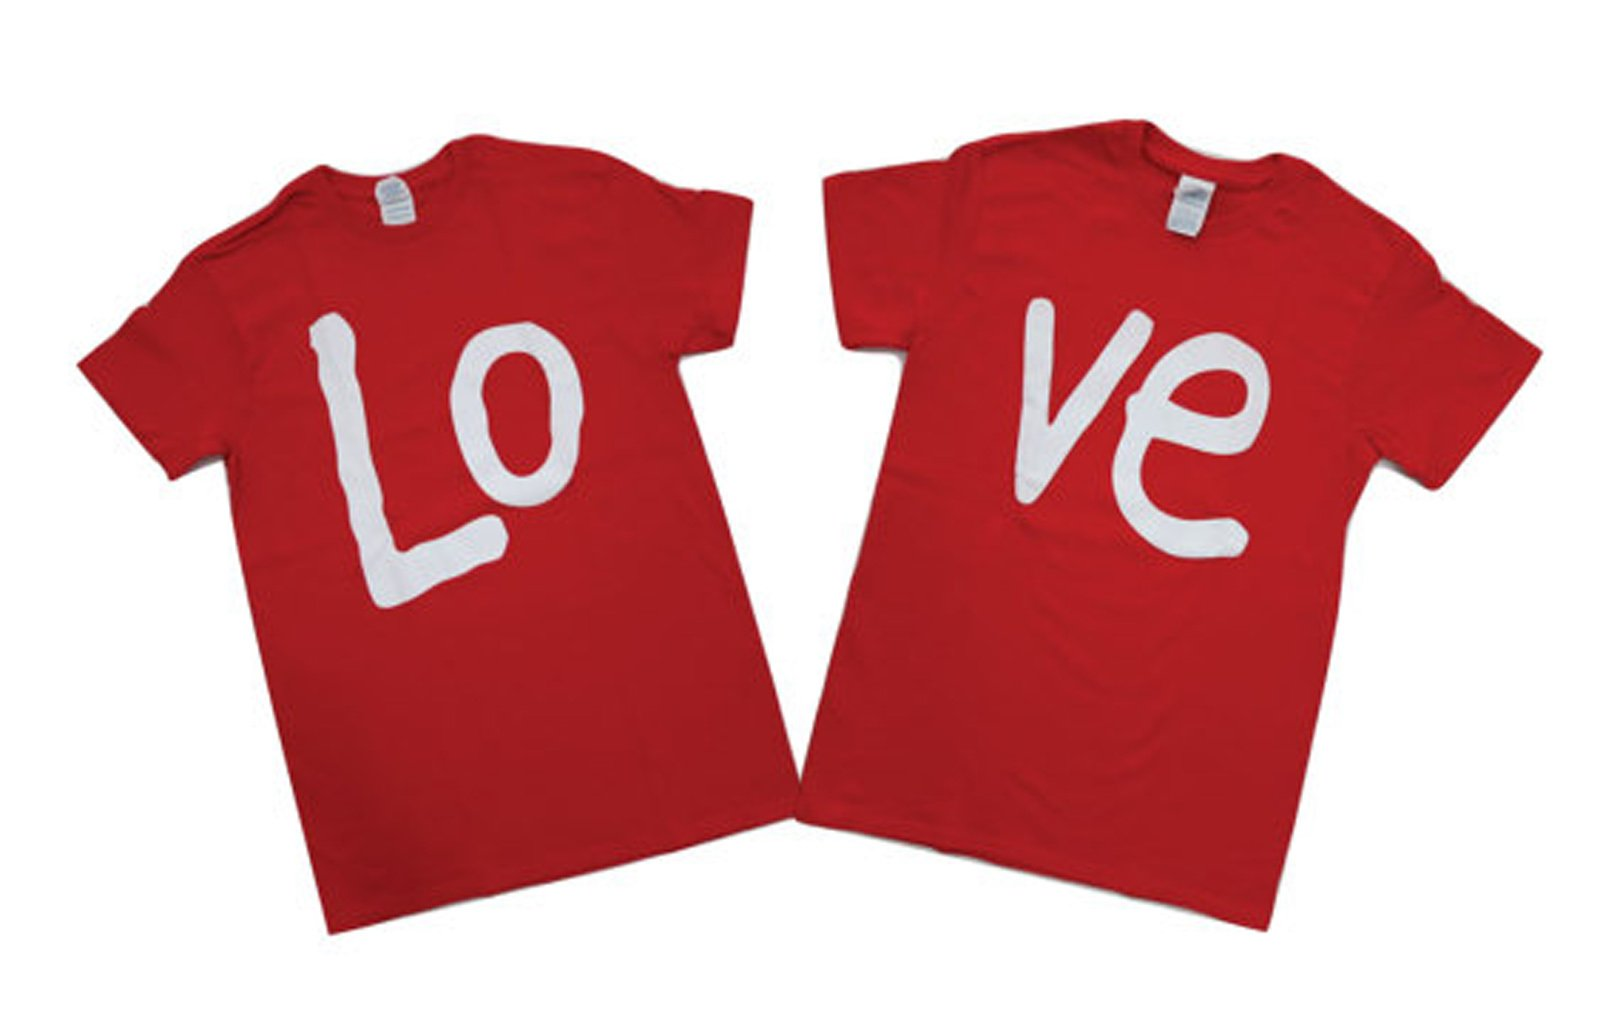 LOVE Mr & Mrs His and Hers Gift for Couples Wedding, Anniversary, Newlywed Matching Set T-Shirts (Mens XL / Womens L)